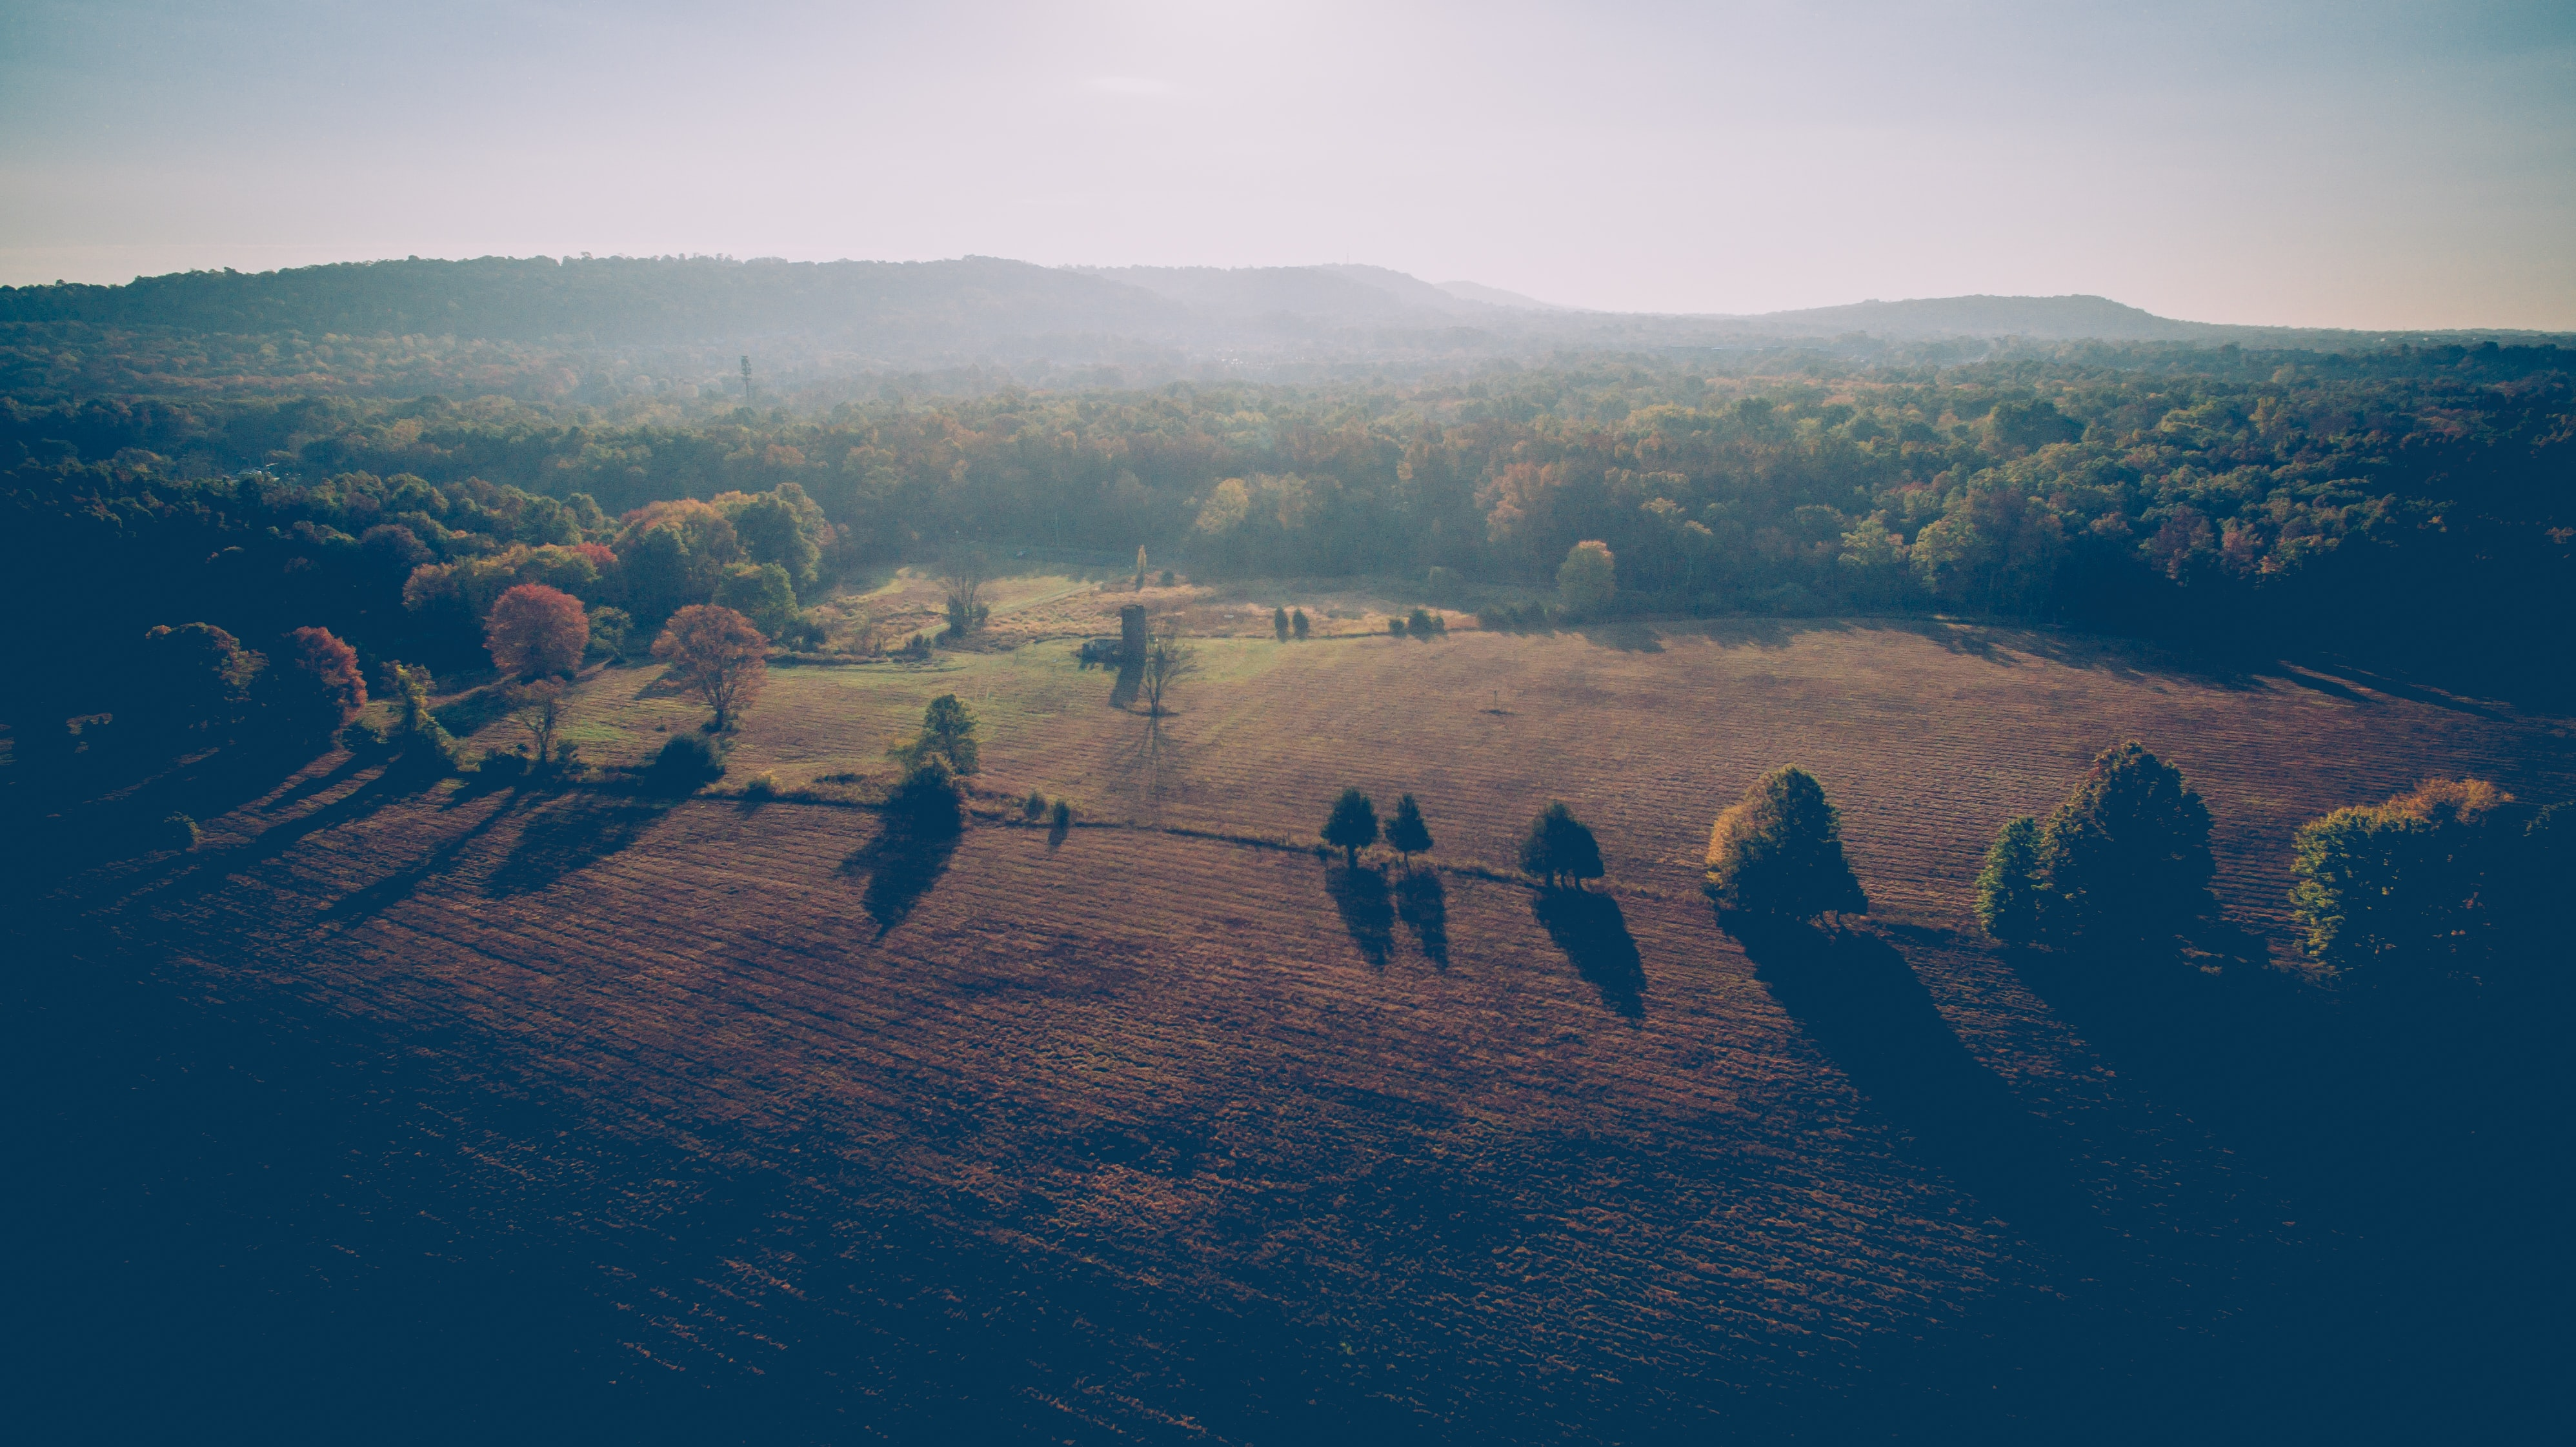 A hazy shot of autumn forests around plowed fields in Somerset County